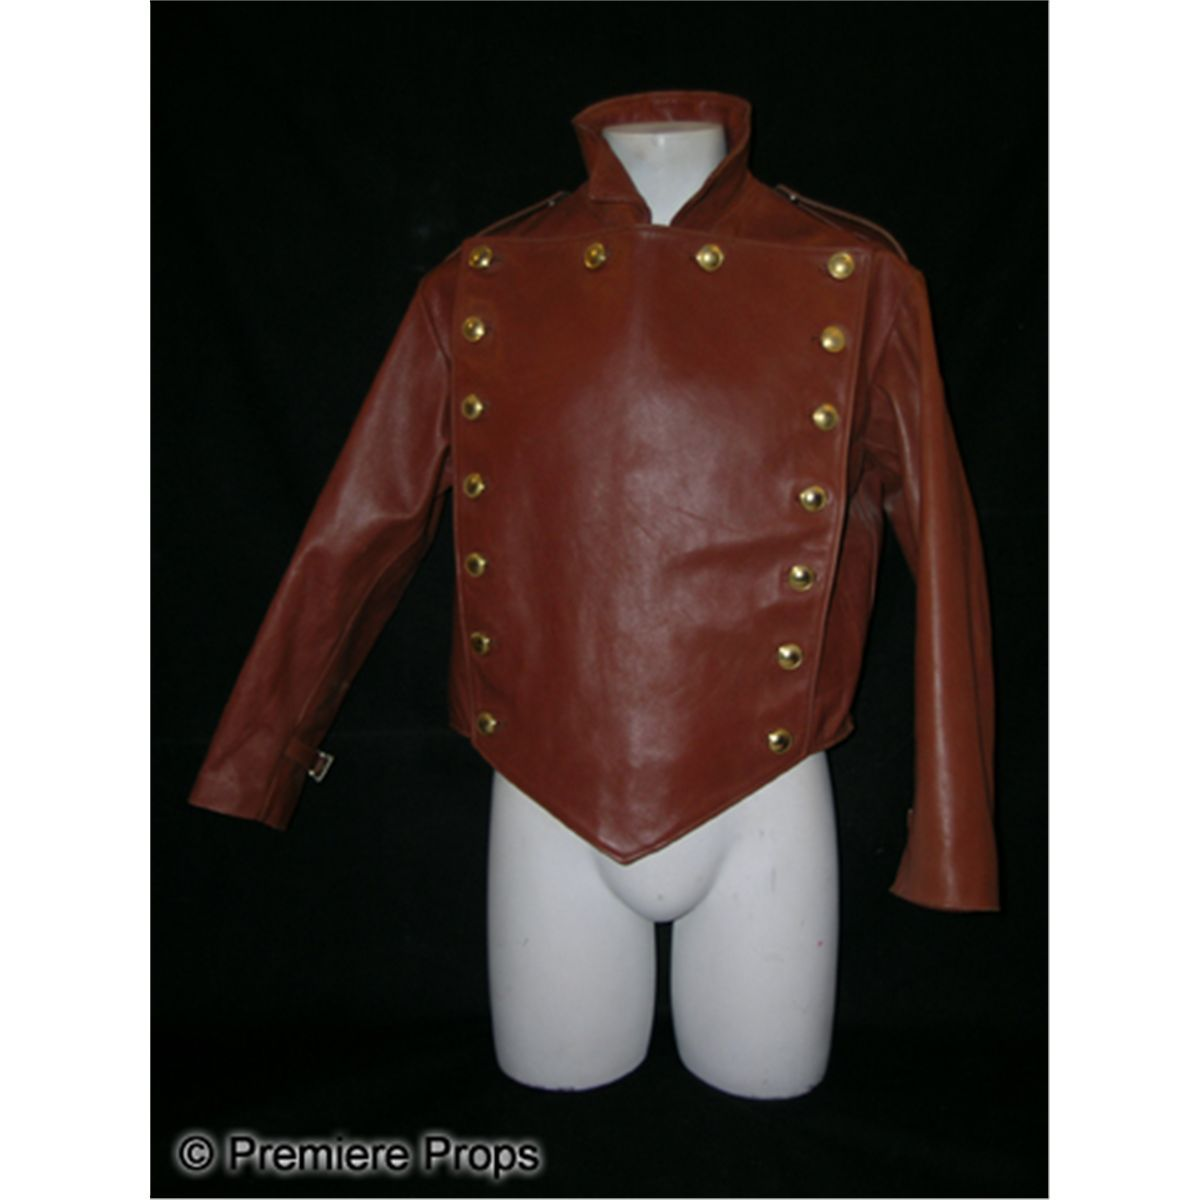 Billy Campbell's Stunt Jacket from The Rocketeer